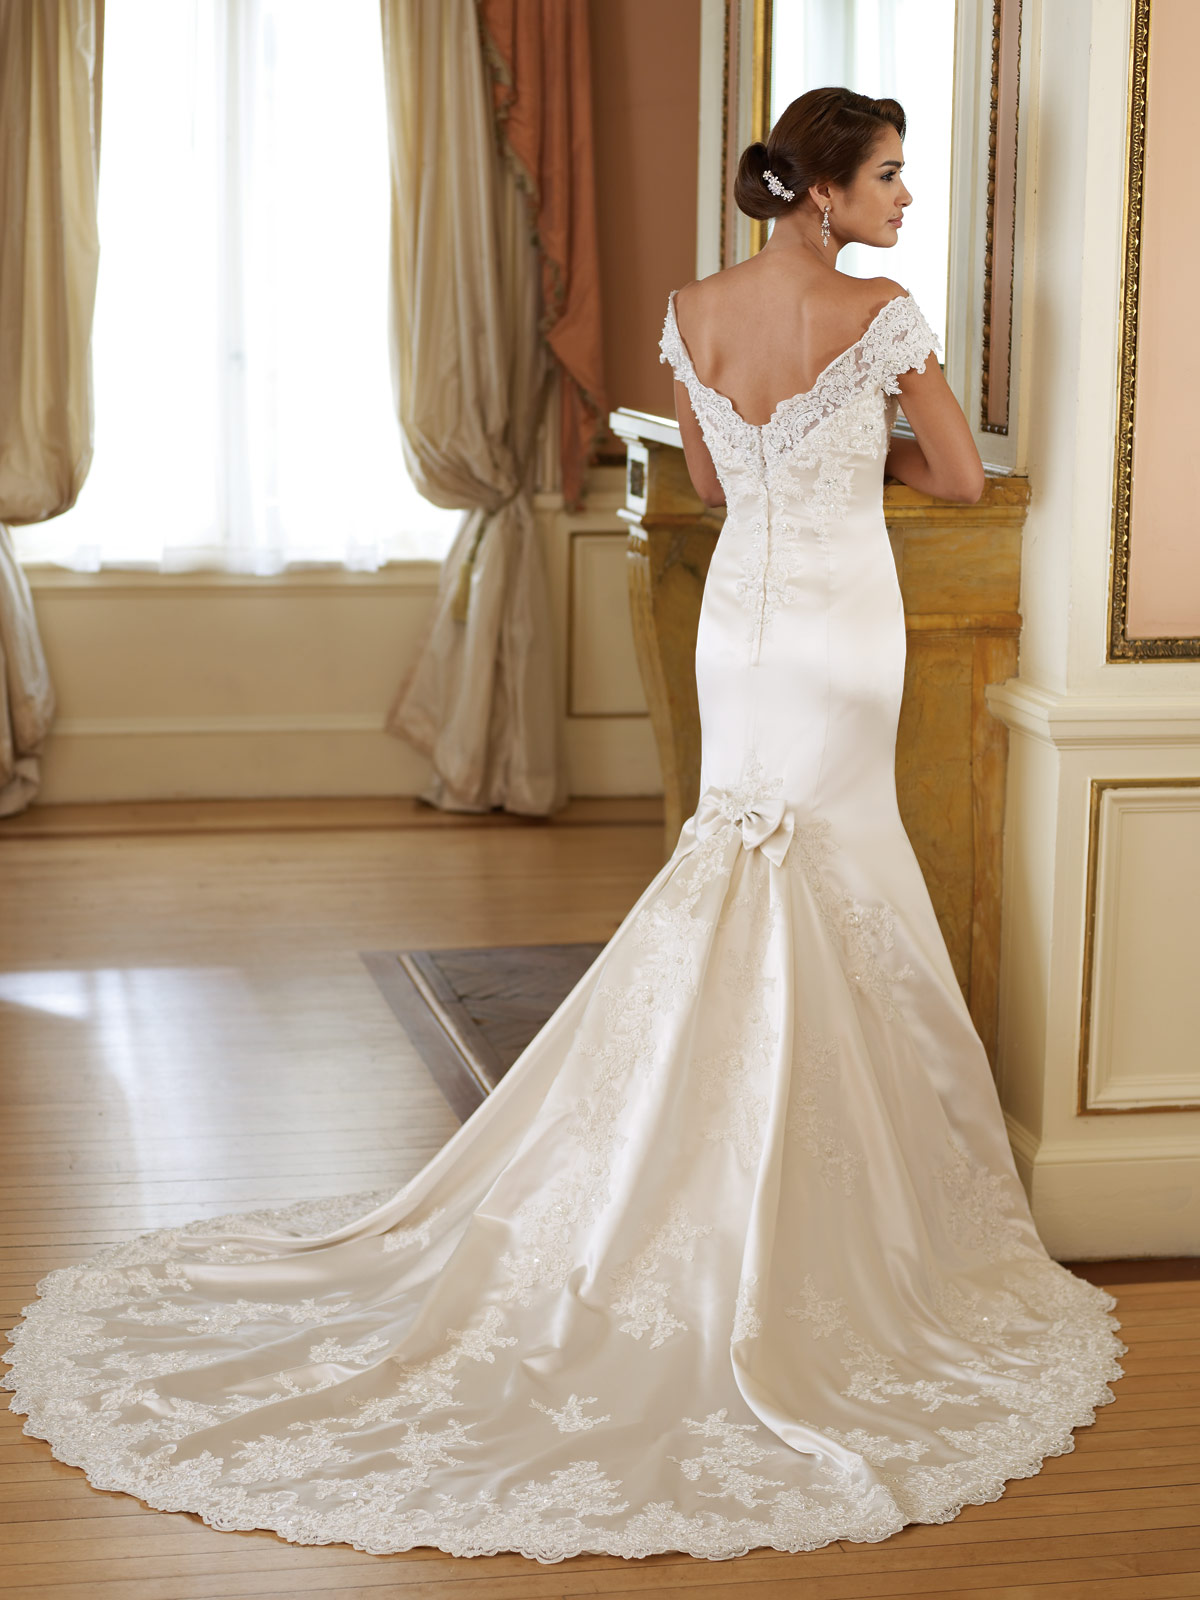 Wedding dresses set 3 hairstyle qoutes tattoo for Wedding dresses in delaware